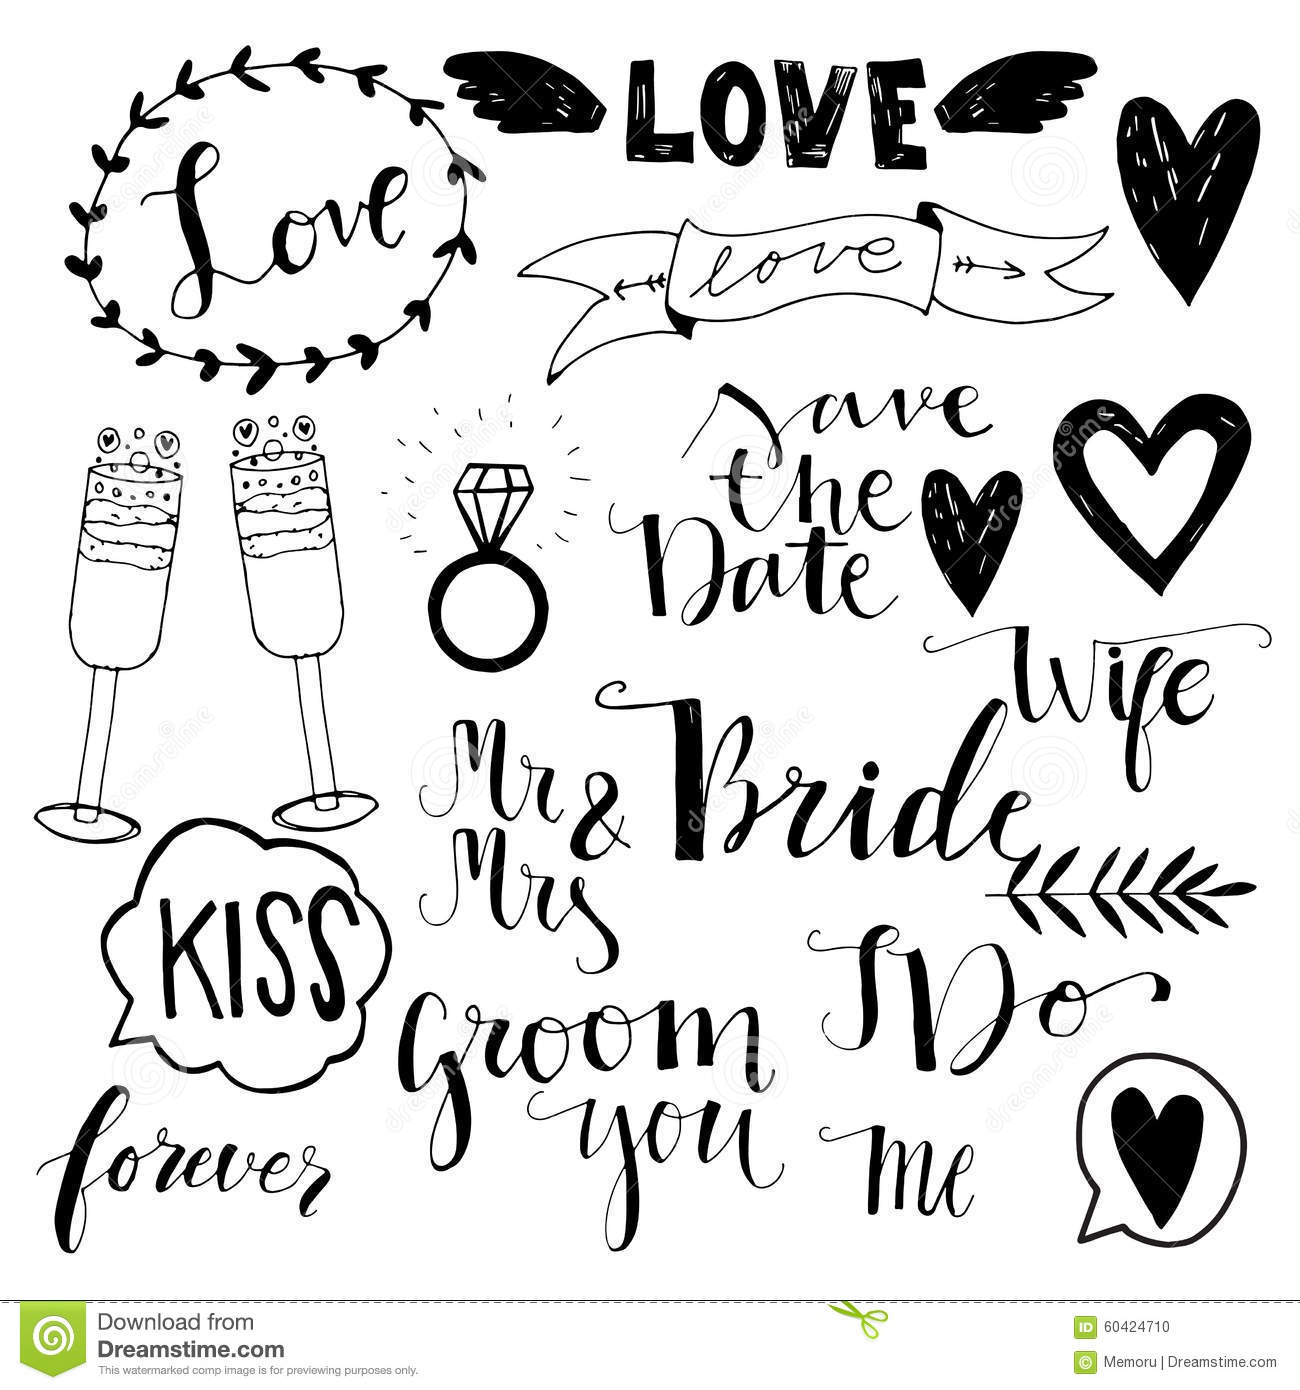 Ringelrobbe in addition How To Draw The Witch King moreover Anime Skirt further Stock Illustration Hand Drawn Wedding Doodle Icons Save Date Invitation Girly Doodles Funny Love Image60424710 further Dinosours. on cute rings